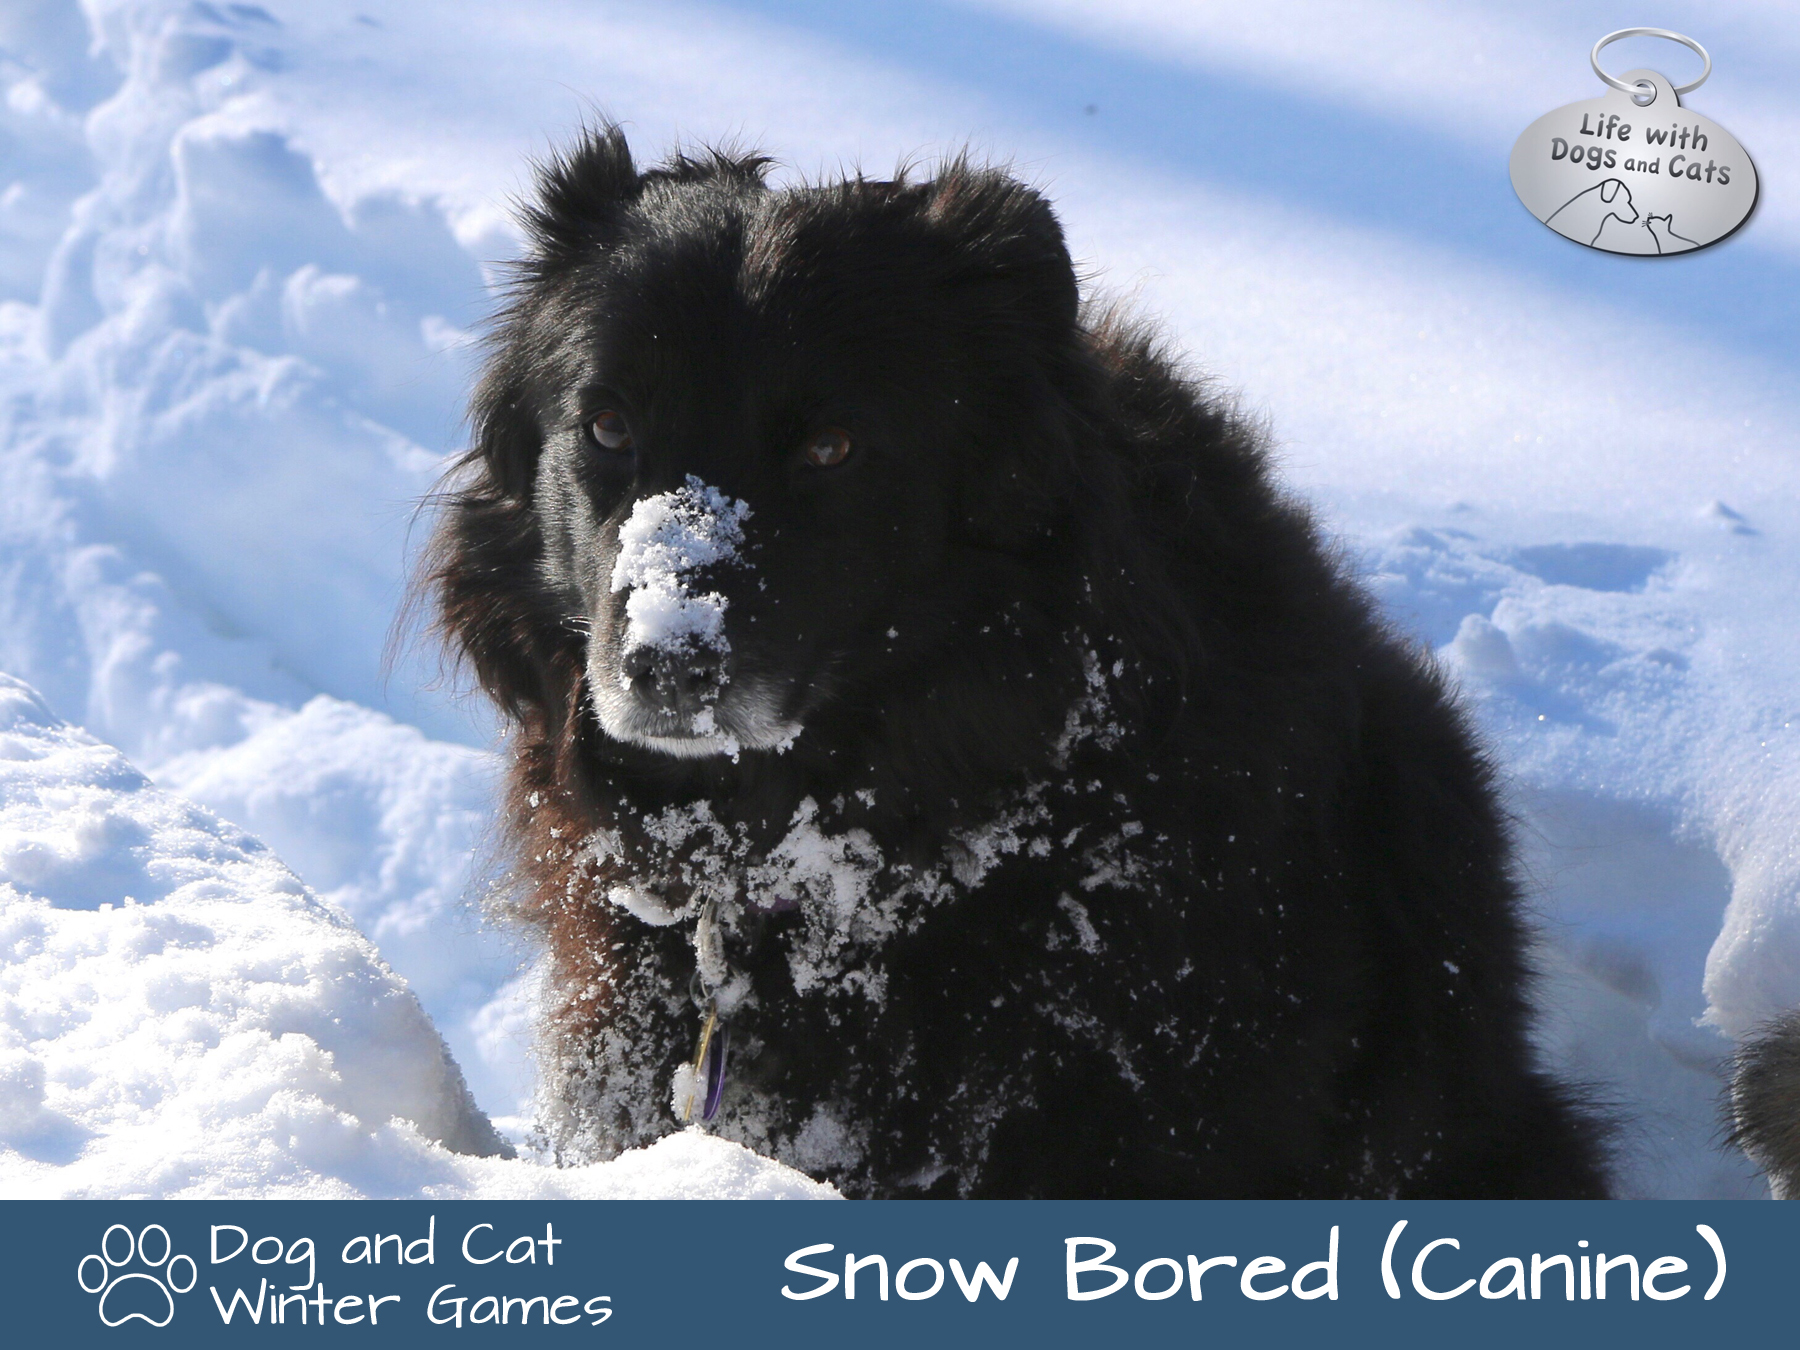 Dog and Cat Winter Games: Snow bored